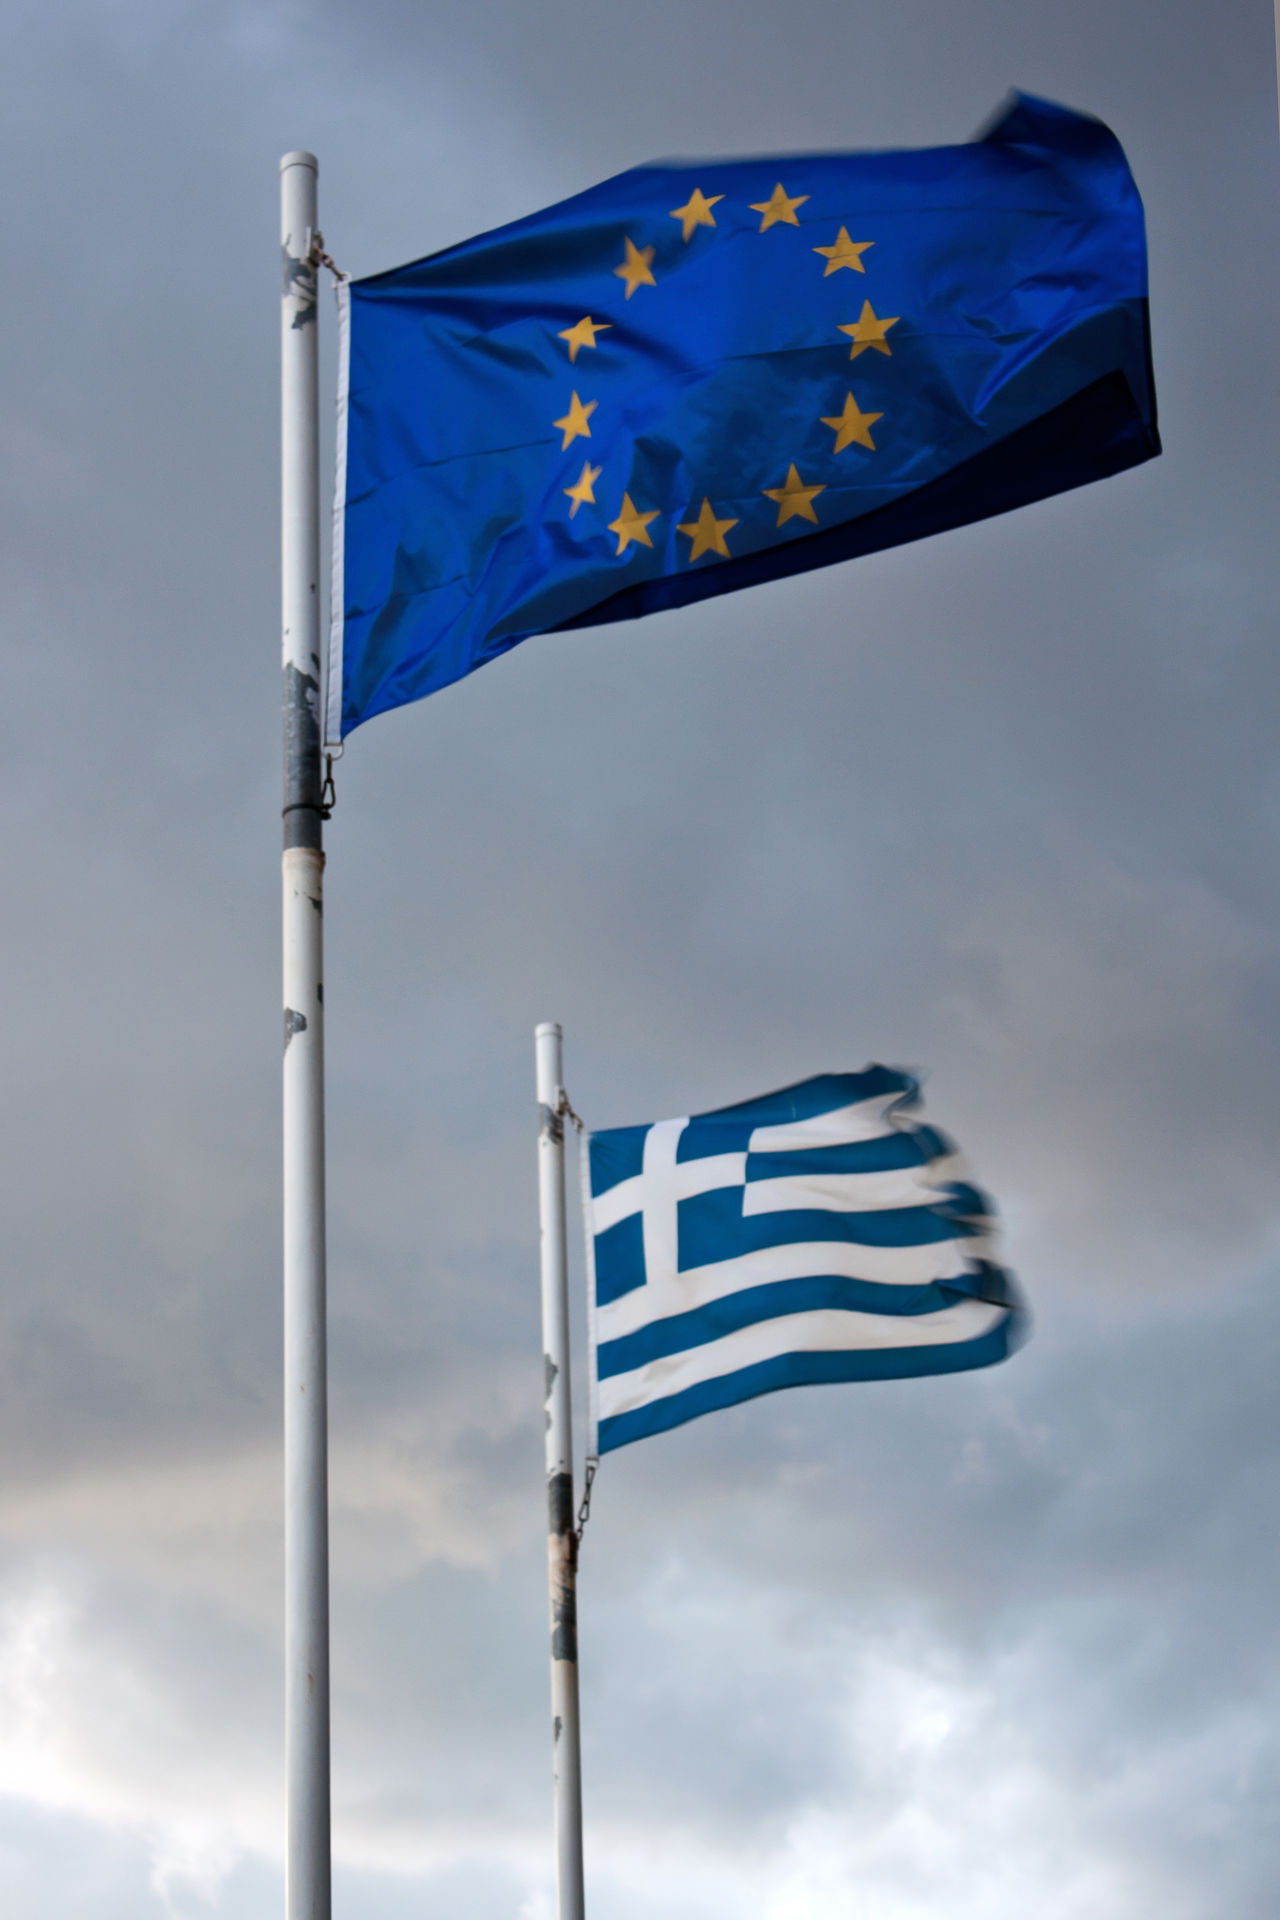 Crisis Day Dynamic Eu Euro Europe European Union Financial Crisis Flag Greece Greece Flag Low Angle View Negotiating Outdoors Sky Tense Wind